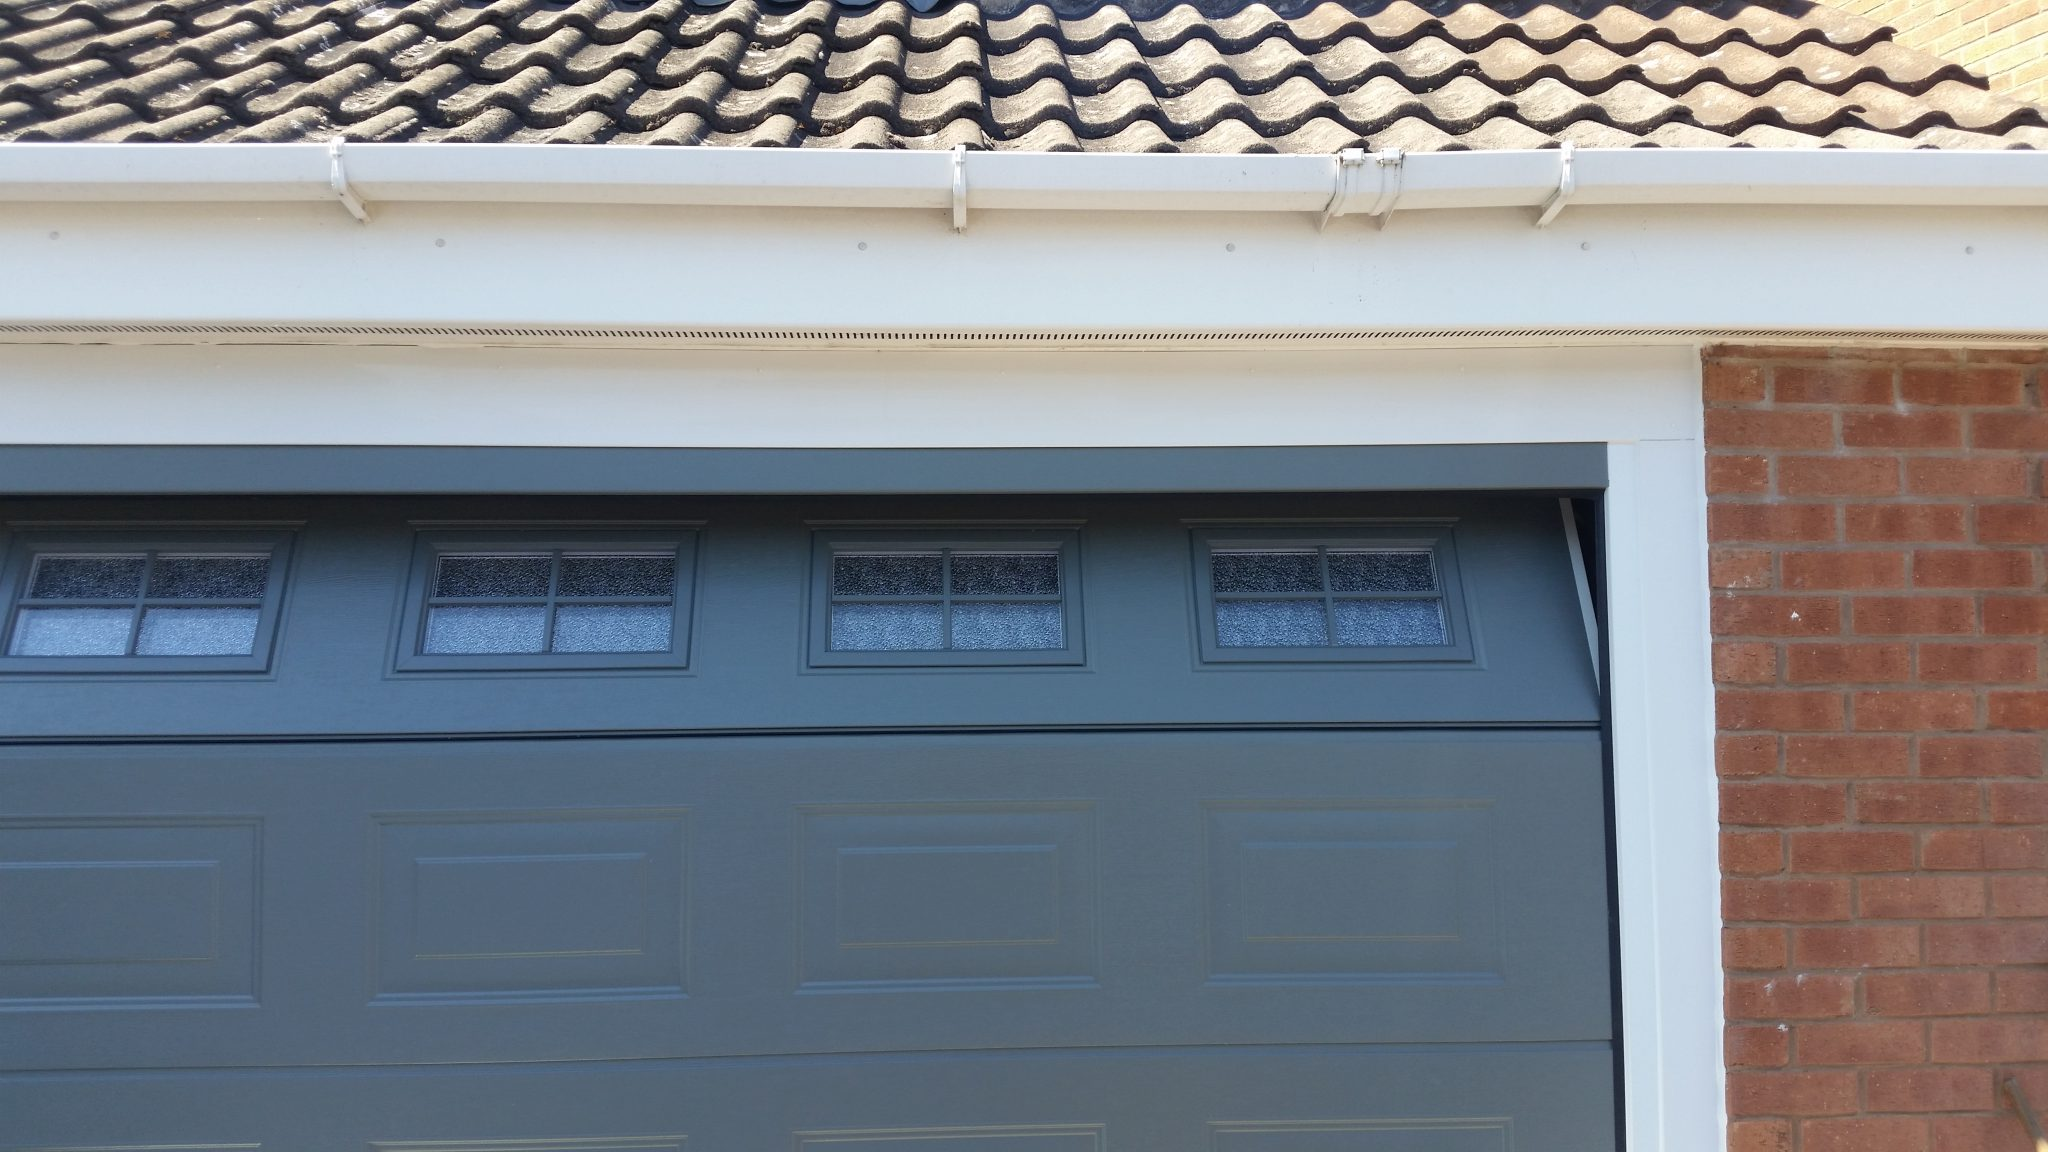 grey novoferm sectional garage door with windows